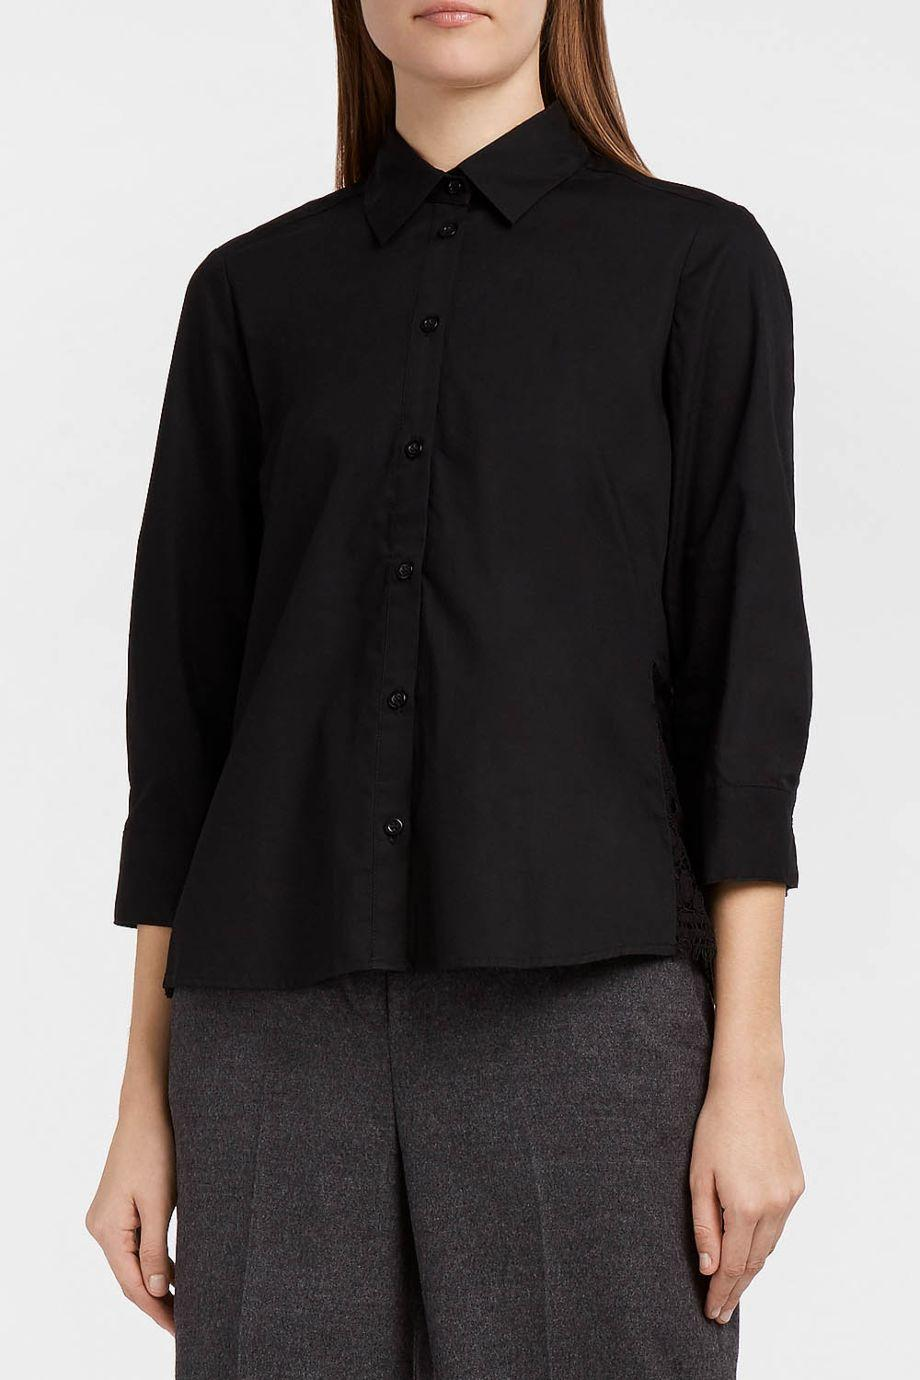 Paul & Joe Sister Majolie Lace-Trimmed Cotton-Poplin Shirt